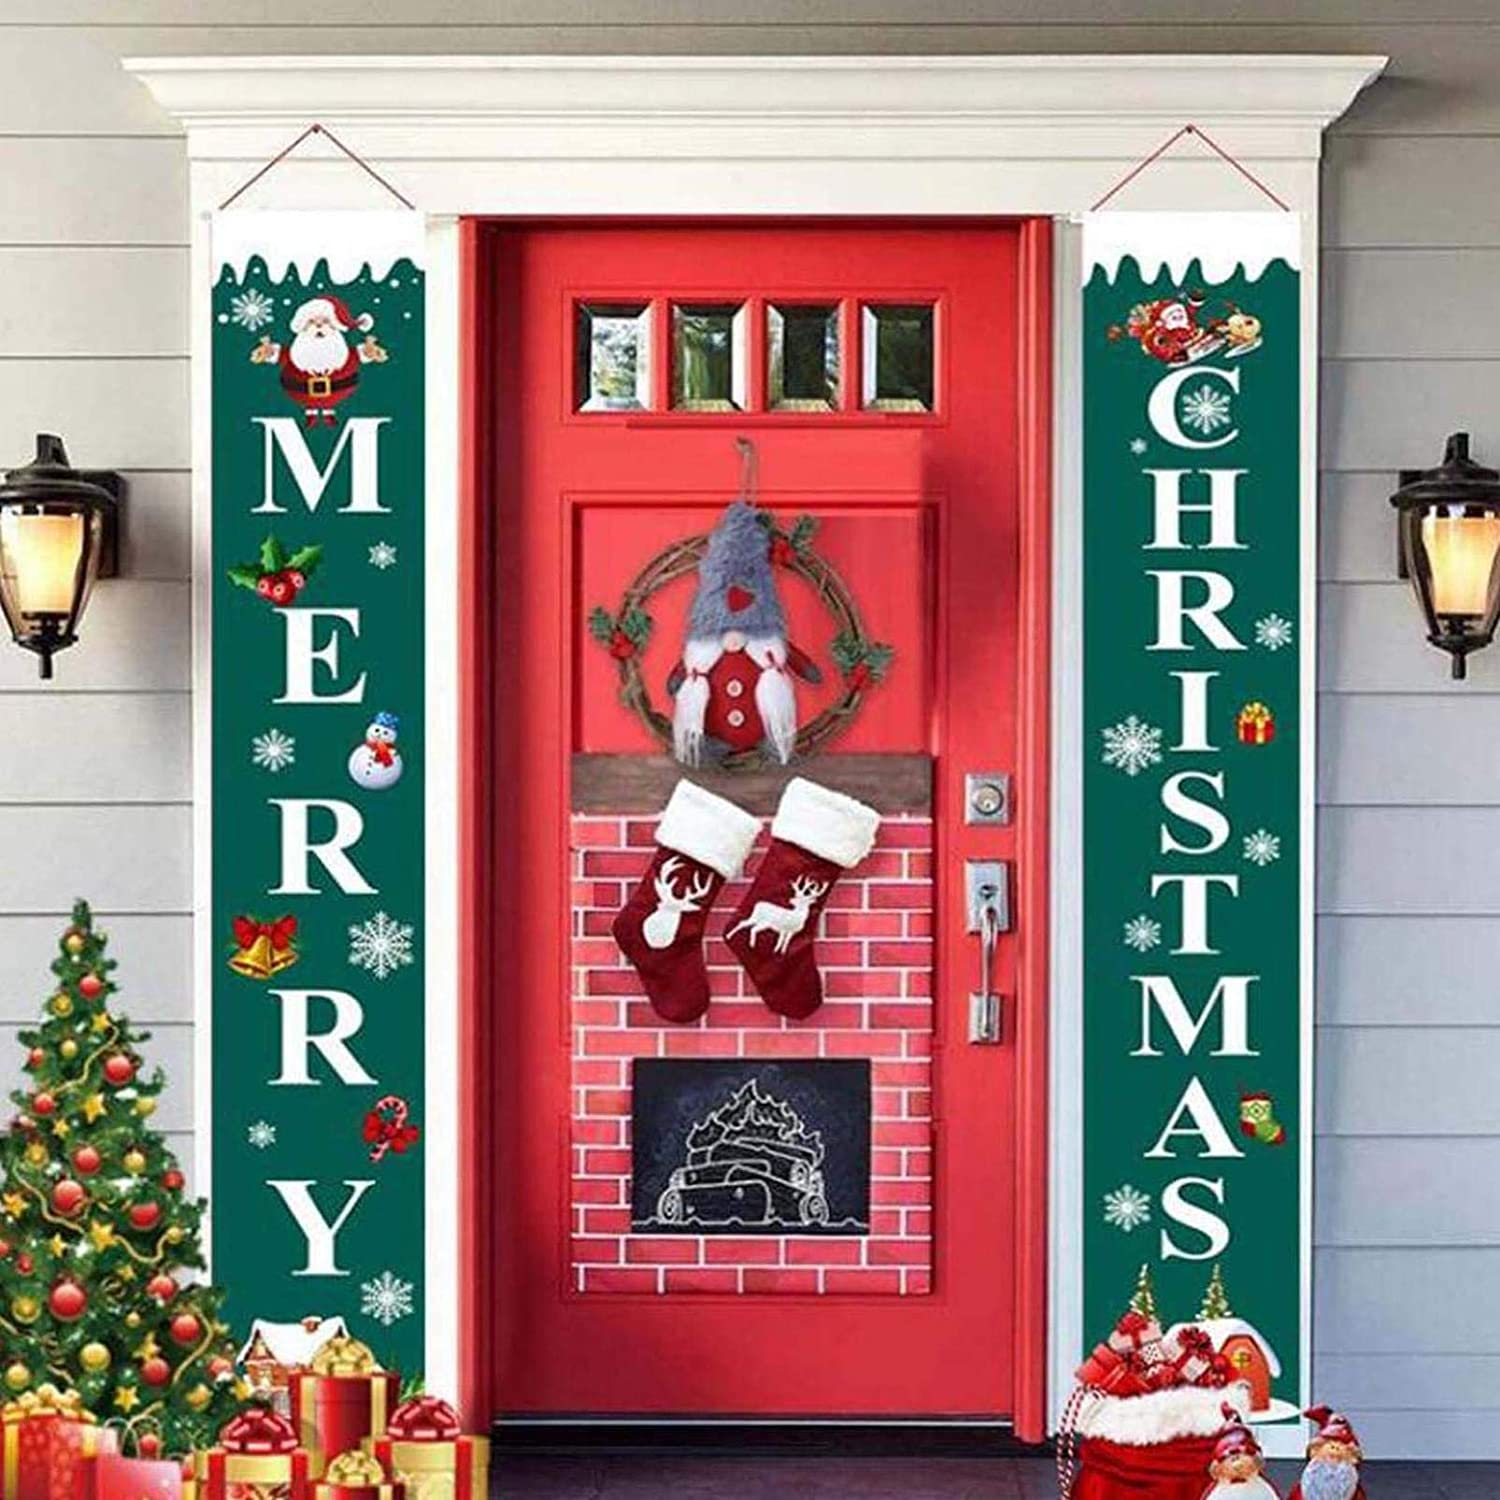 Christmas Porch Sign Merry Christmas Hanging Banners for Holiday Home Indoor Outdoor Porch Wall Front Door Christmas Hanging Decoration (A)